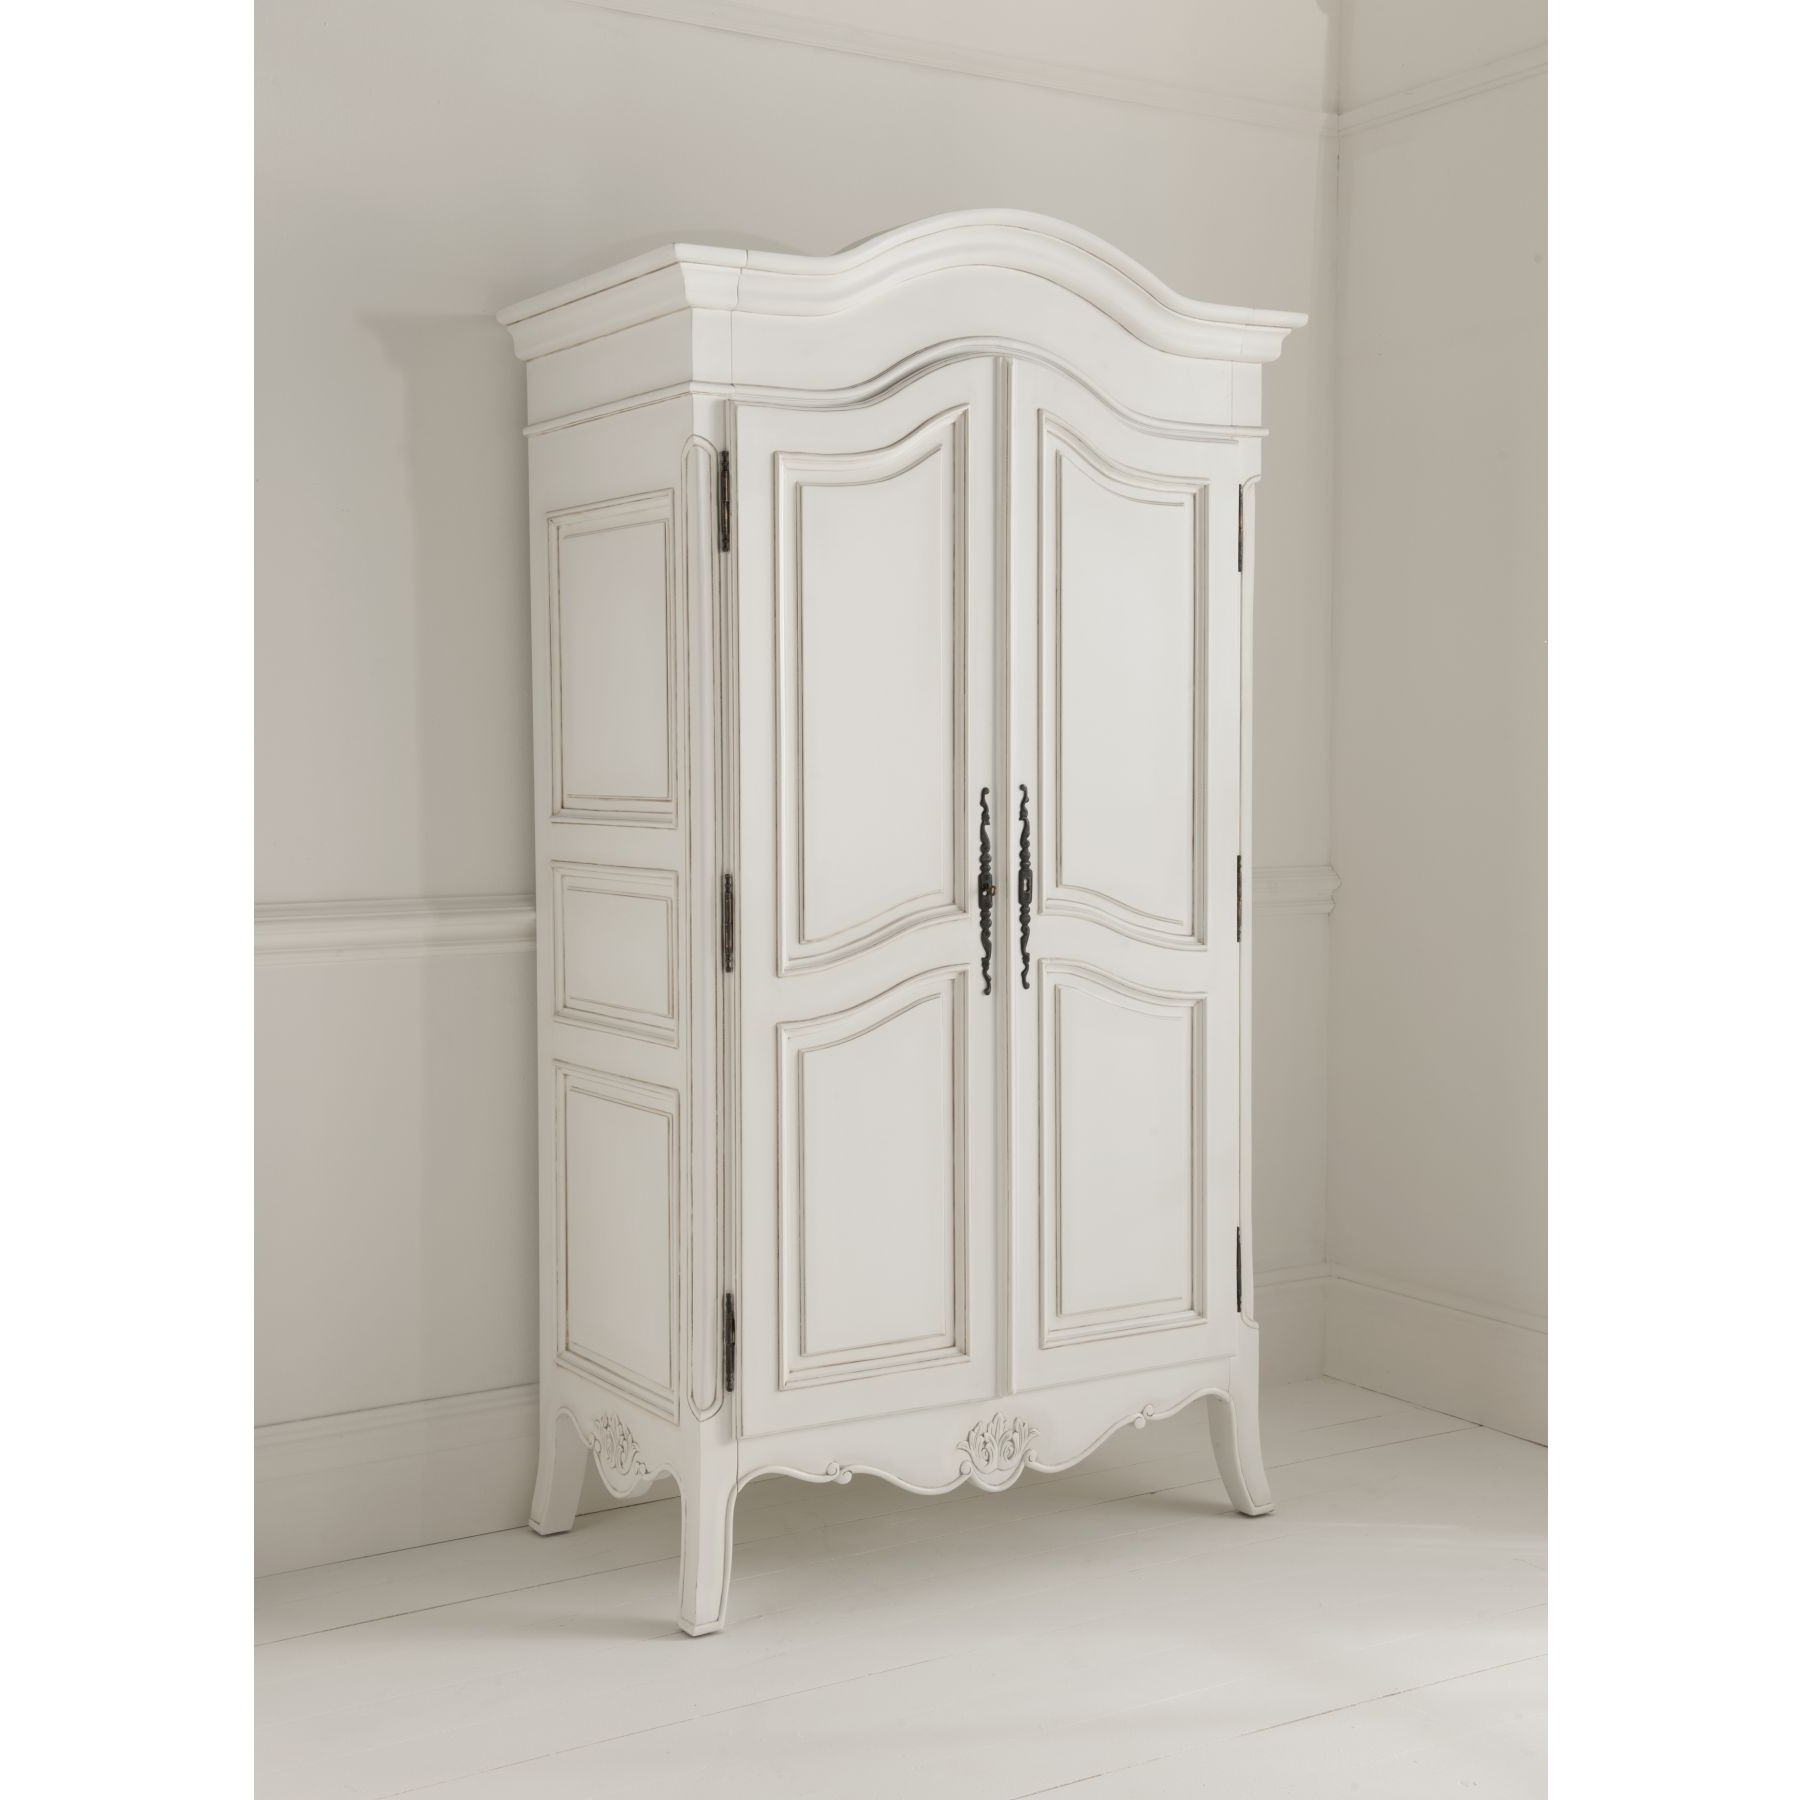 2018 White Antique Wardrobes With Mirrored Armoire For Sale French Vintage Armoires Antique In Many (View 14 of 15)